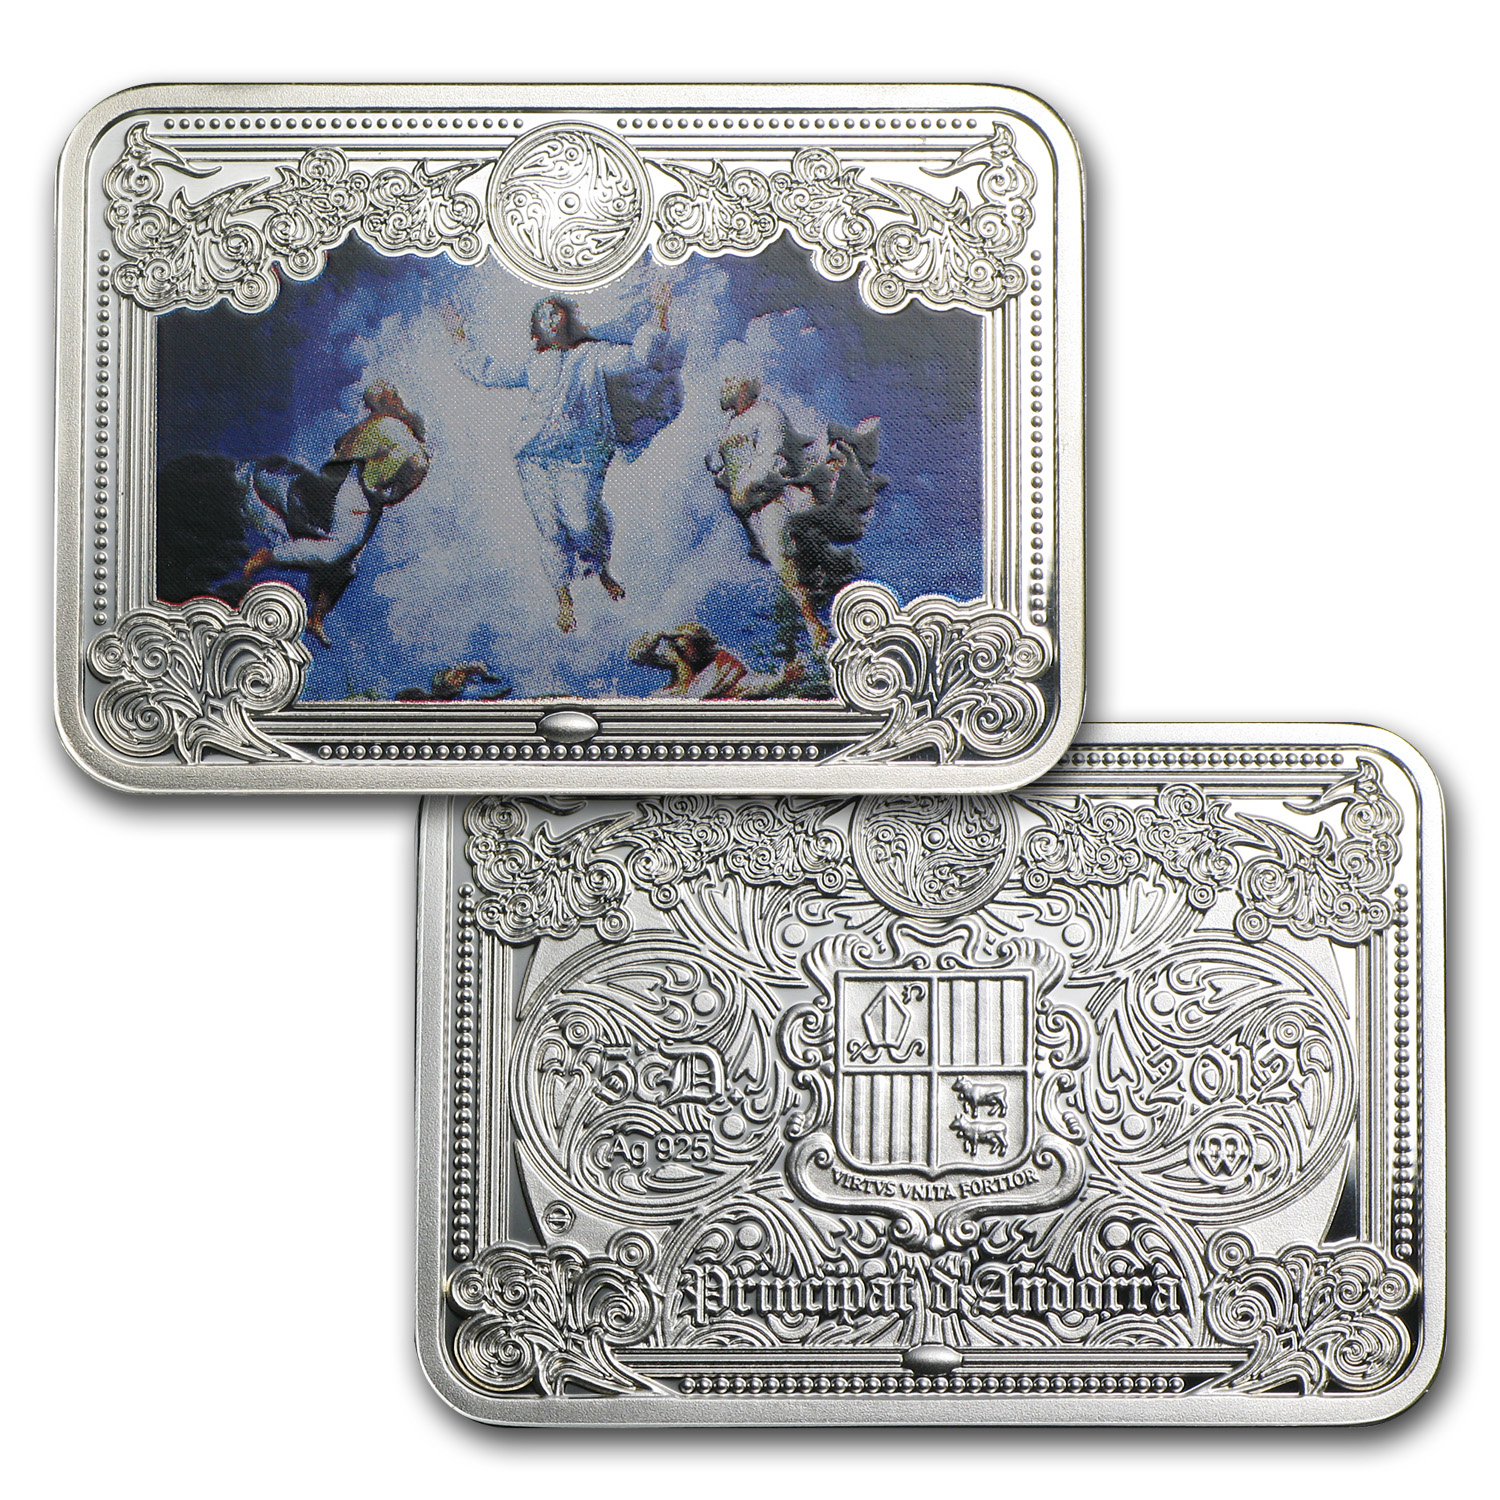 Andorra Proof Silver The Wonders of Jesus Christ Series - 8 Coins